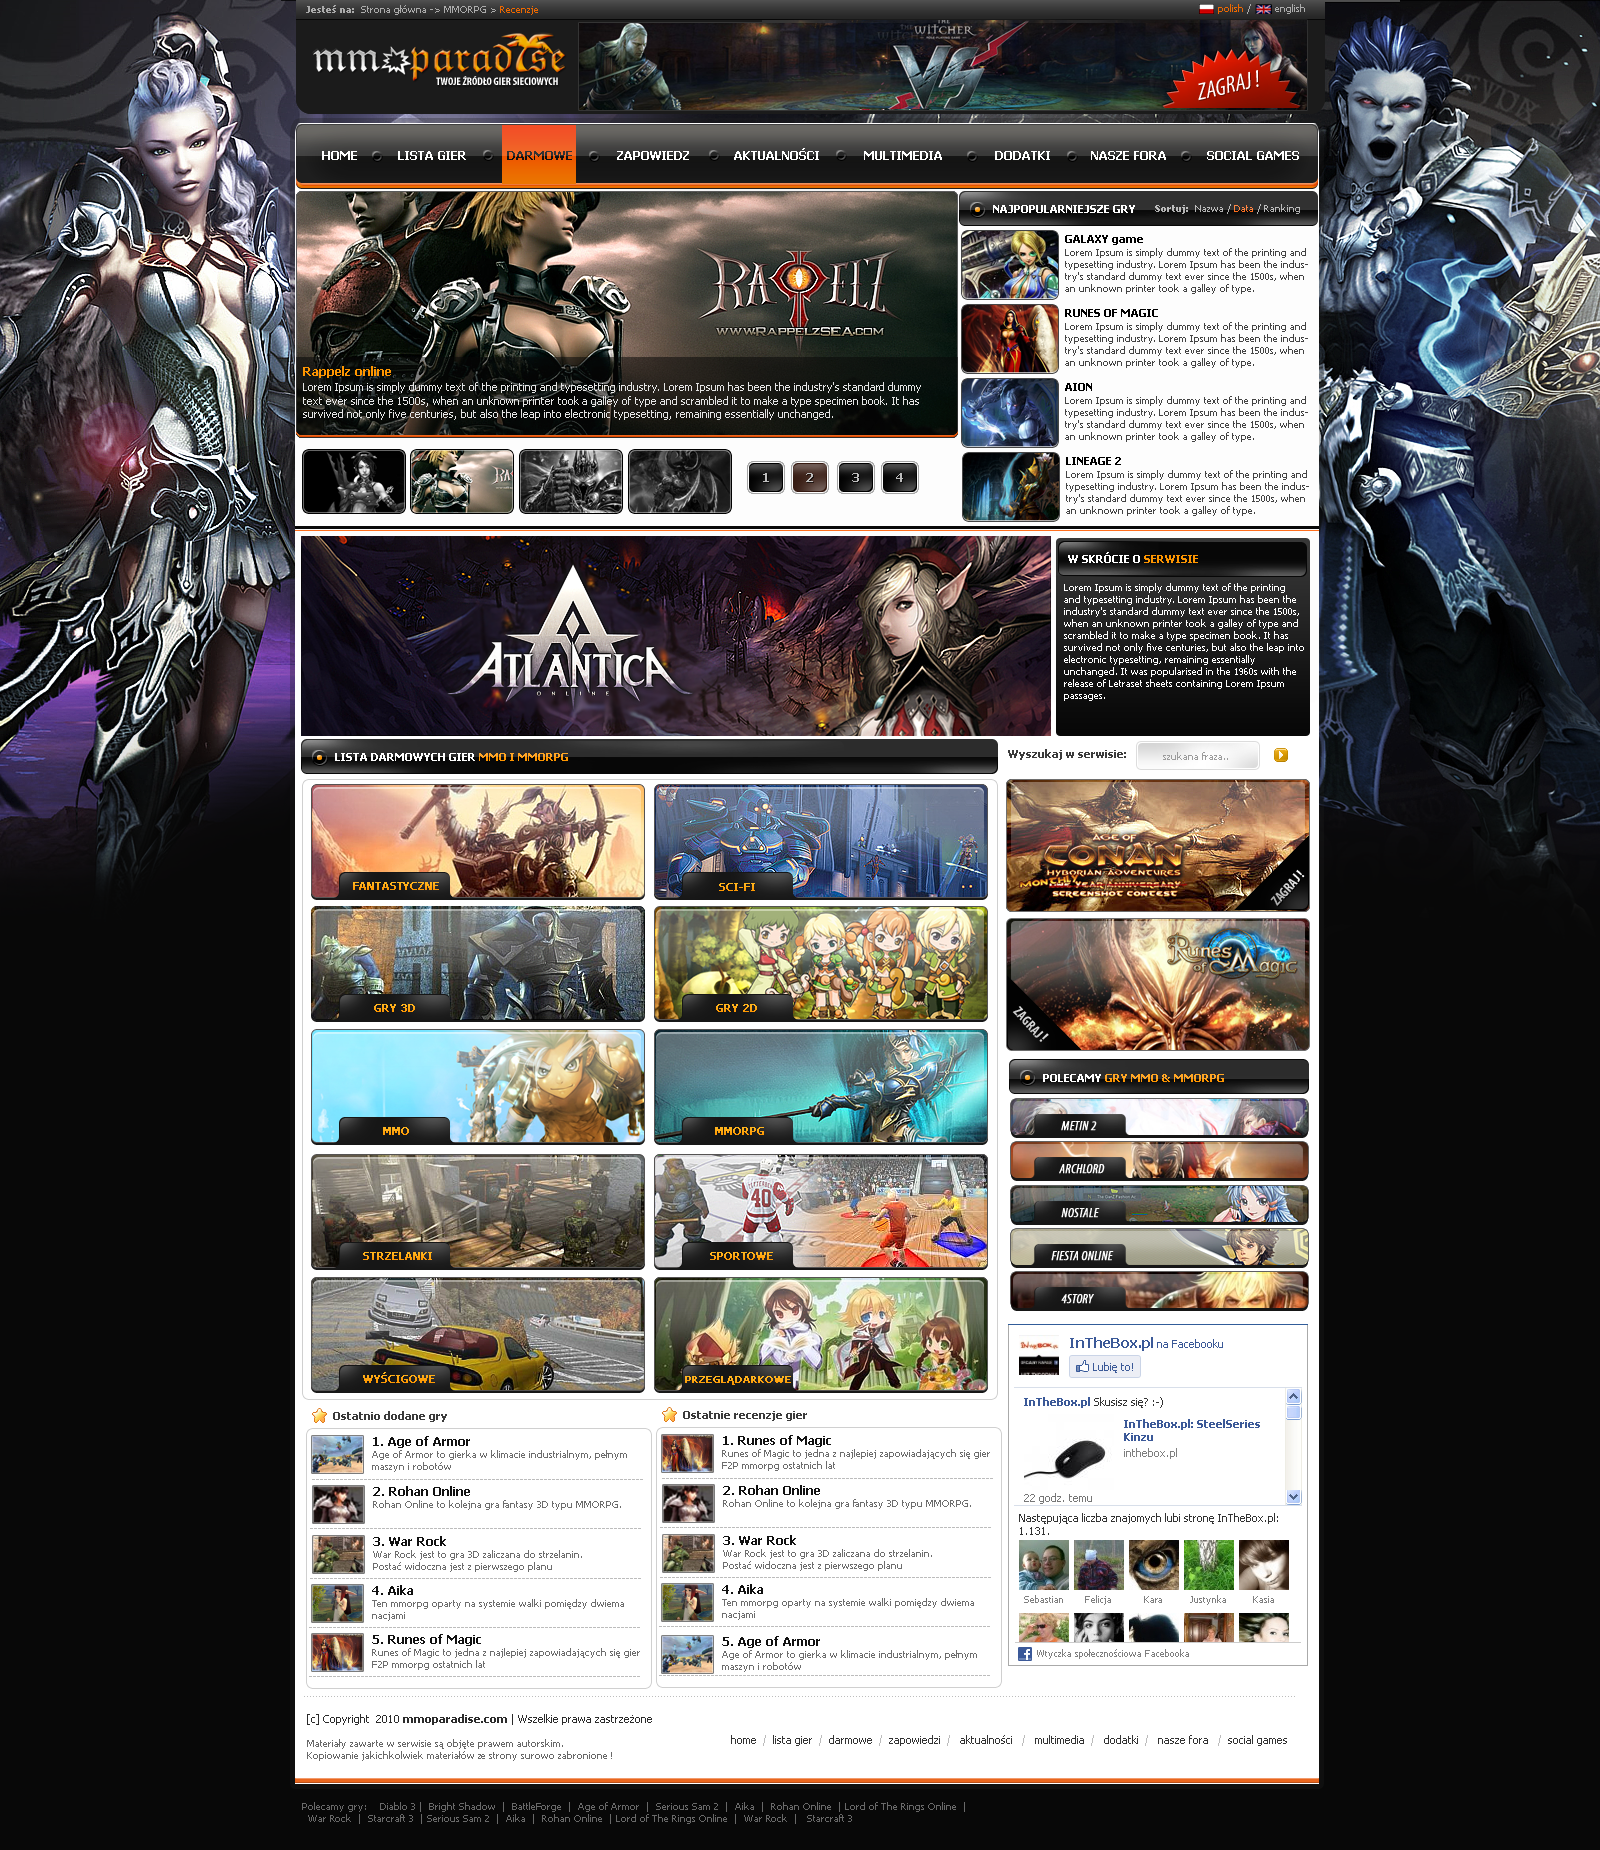 mooparadise.com mmo and mmorpg